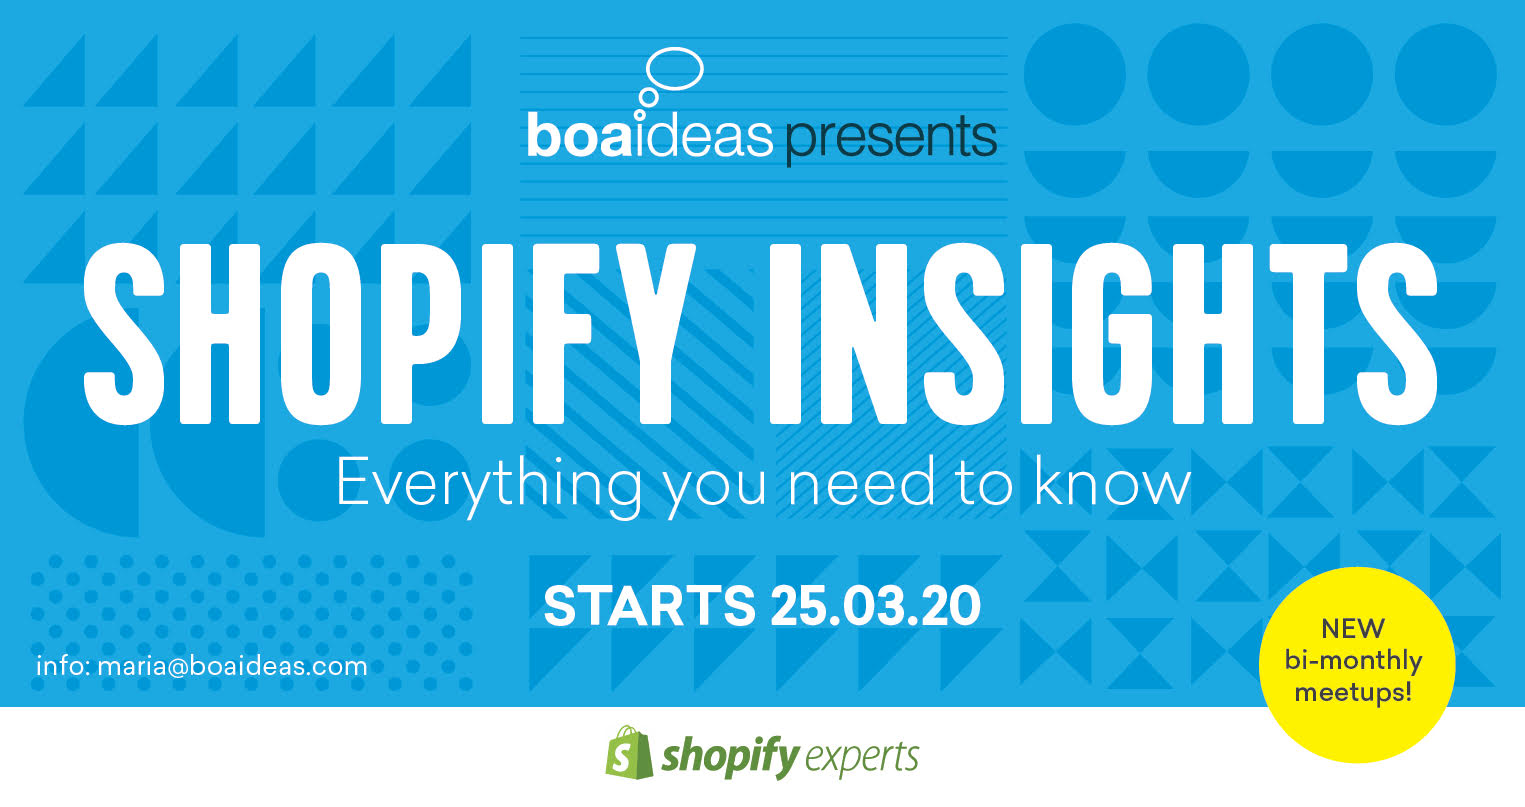 shopify-insights